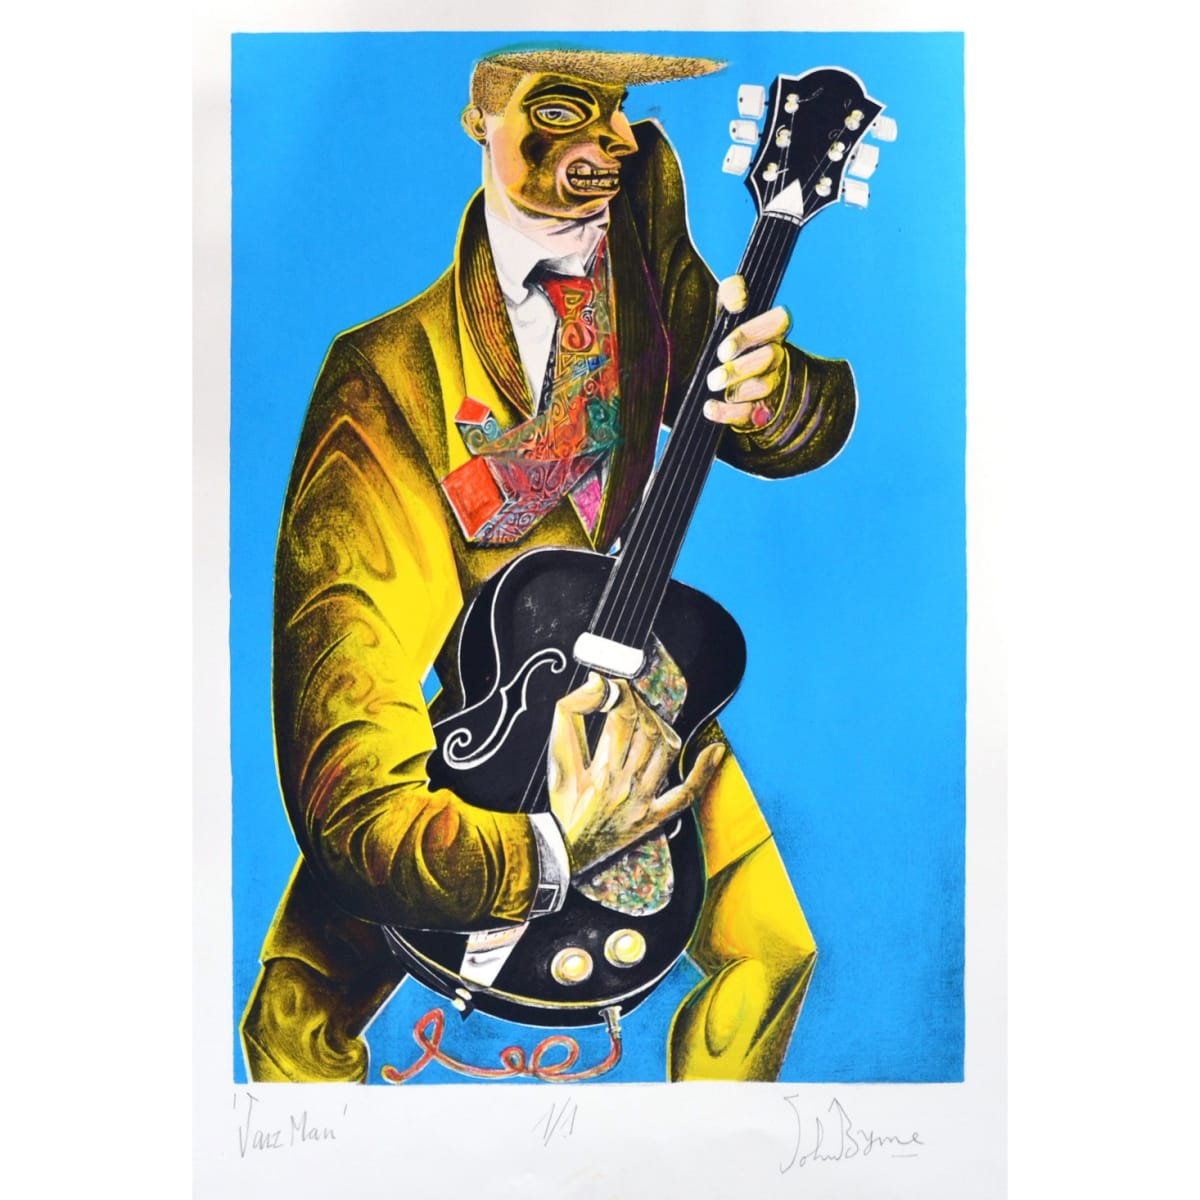 John Byrne Jazz Man, 2019 signed, titled and numbered 1/1 in pencil to margin hand coloured lithograph 26 3/4 x 18 3/4 inches